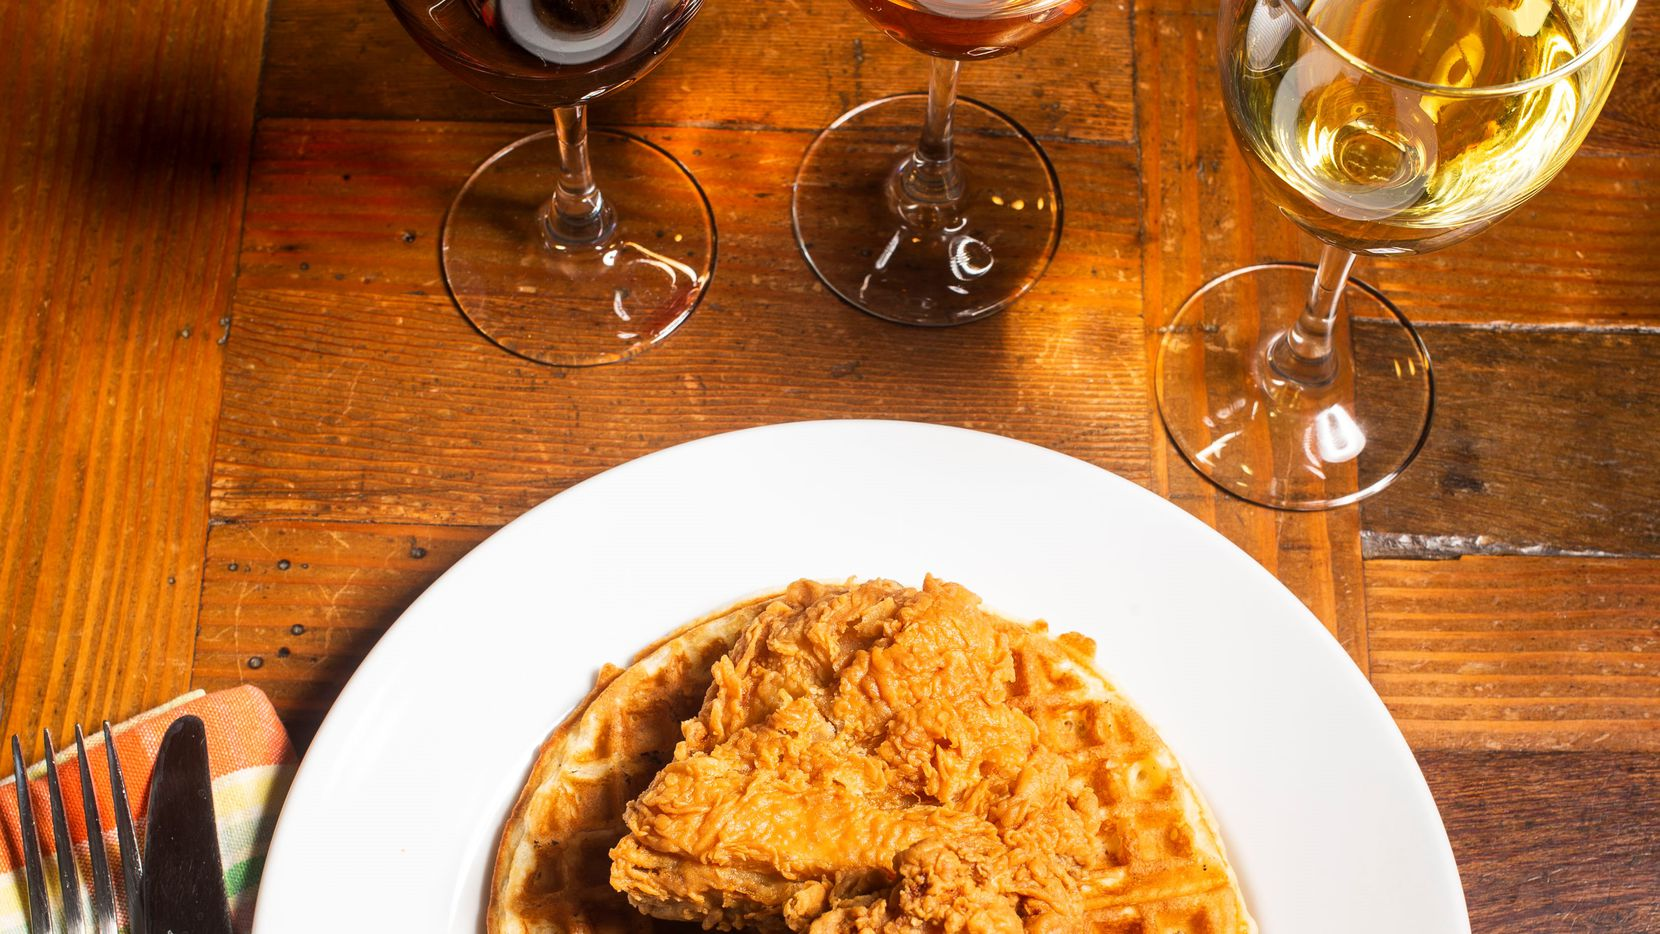 Chicken waffles and wine photographed during a wine panel in Dallas on Wednesday, May 15, 2019. (Shaban Athuman/Staff Photographer)